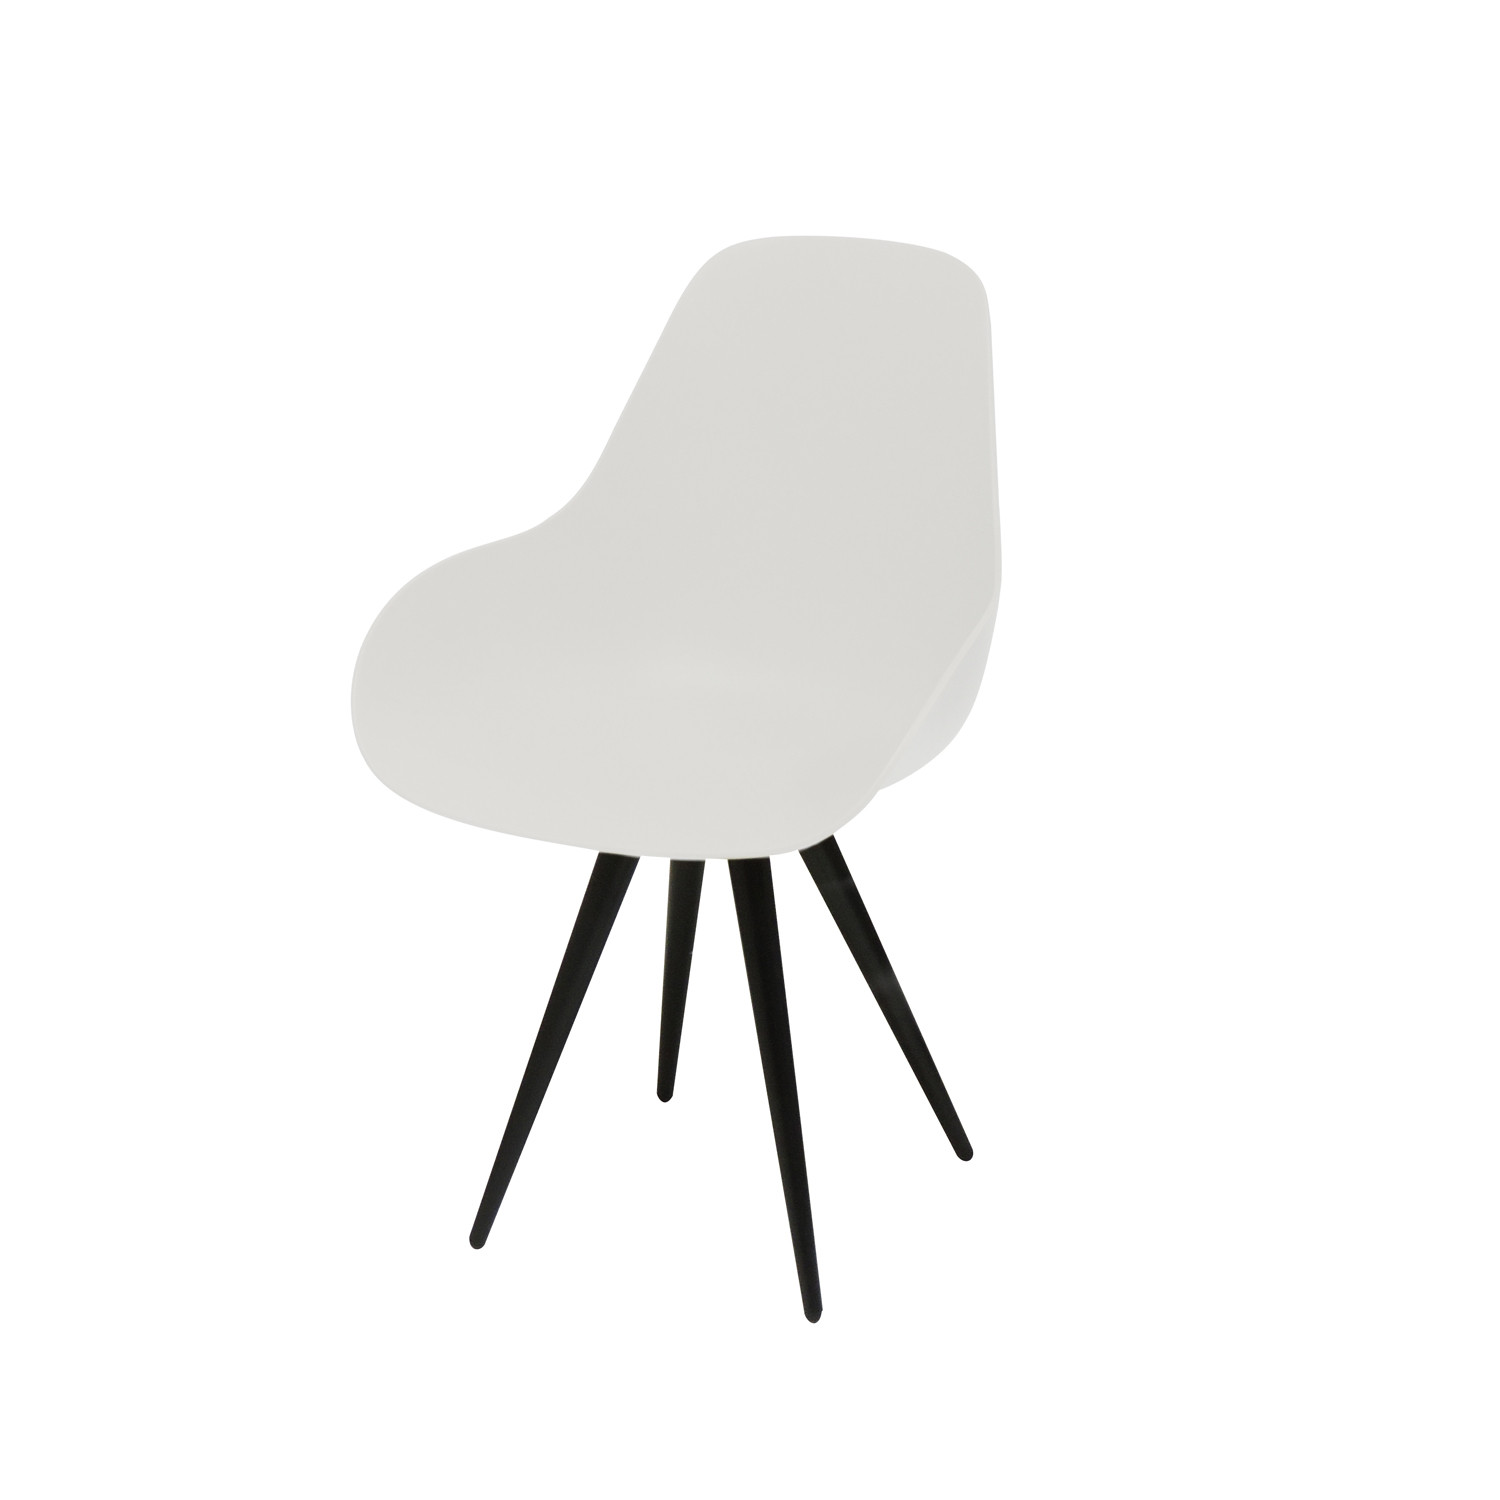 Angel Contract Dimple Chair // Black Legs (White